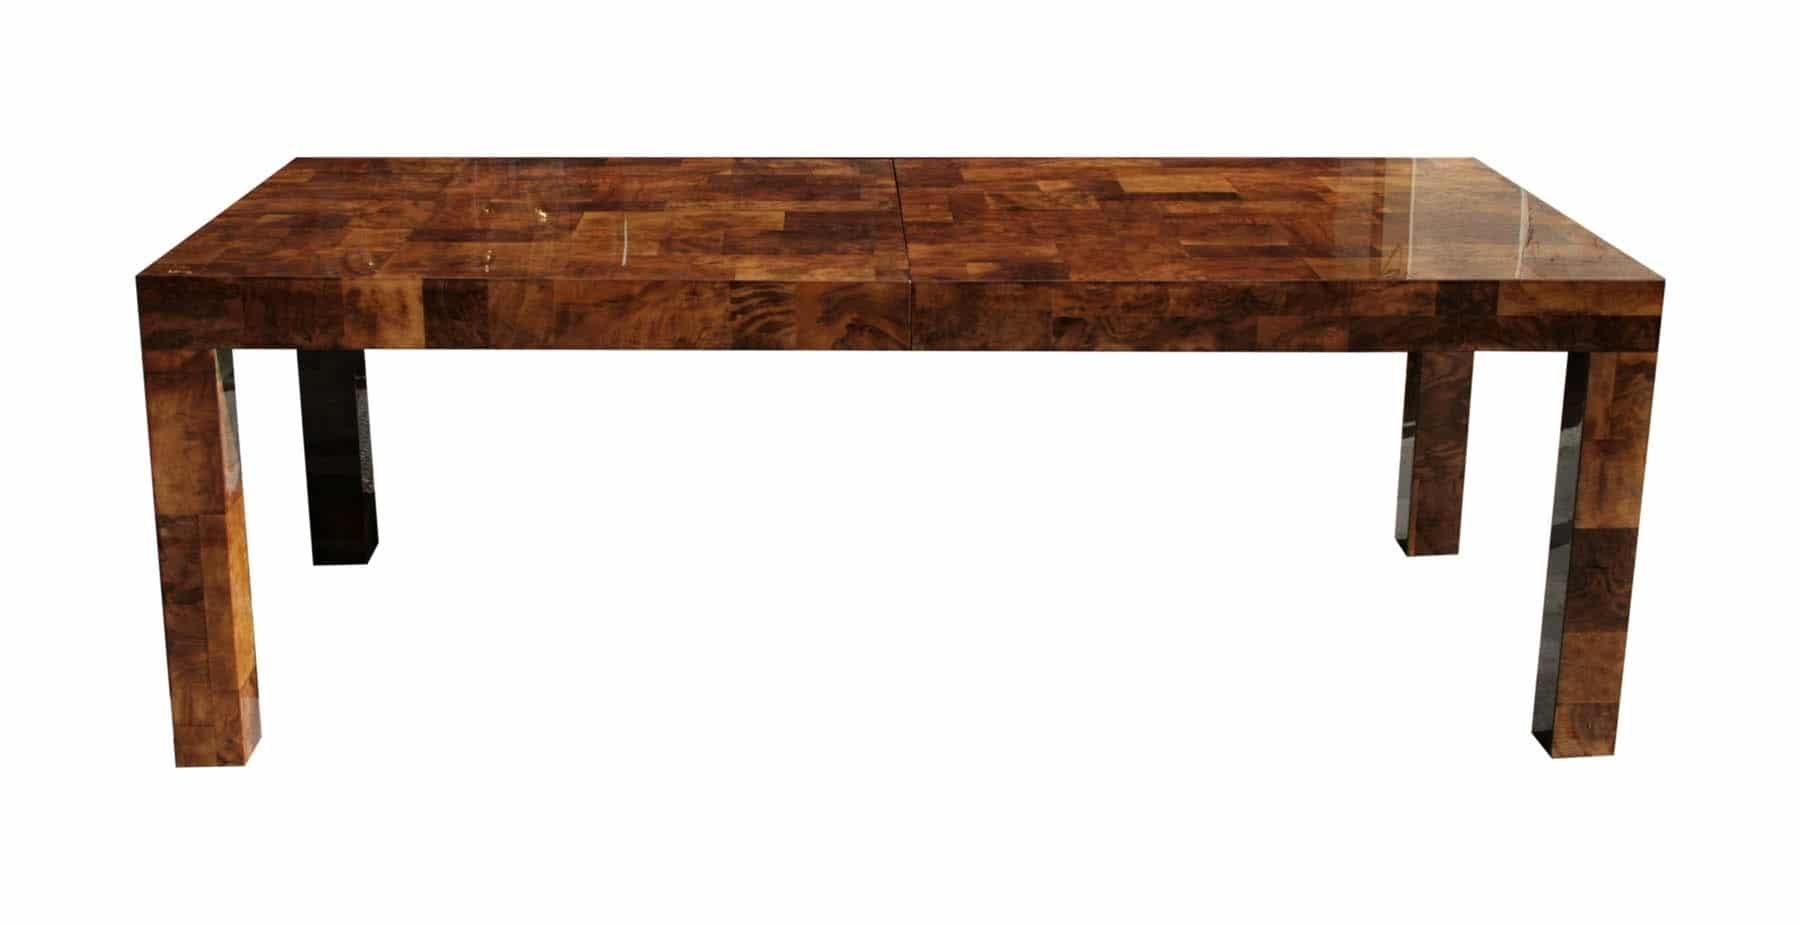 paul evans dining table in walnut burl todd merrill studio On walnut dining table